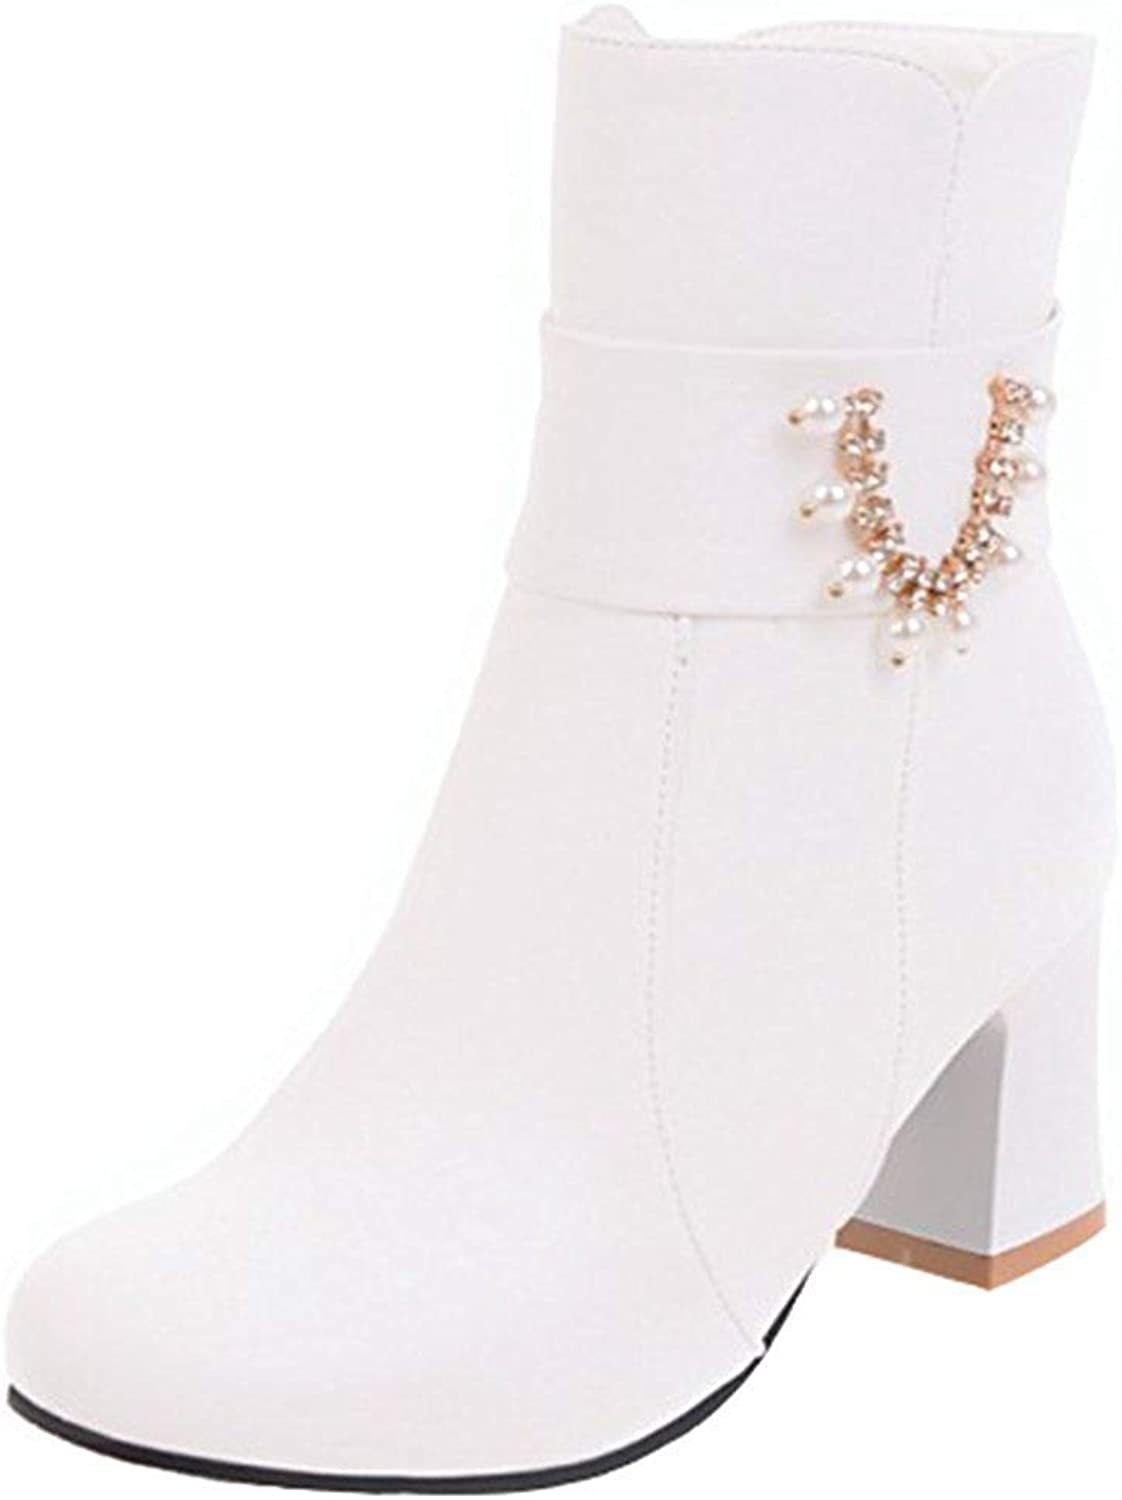 Ghssheh Women's Trendy Rhinestone Belt Block Medium Heel Short Boots Round Toe Side Zipper Ankle Booties White 4 M US